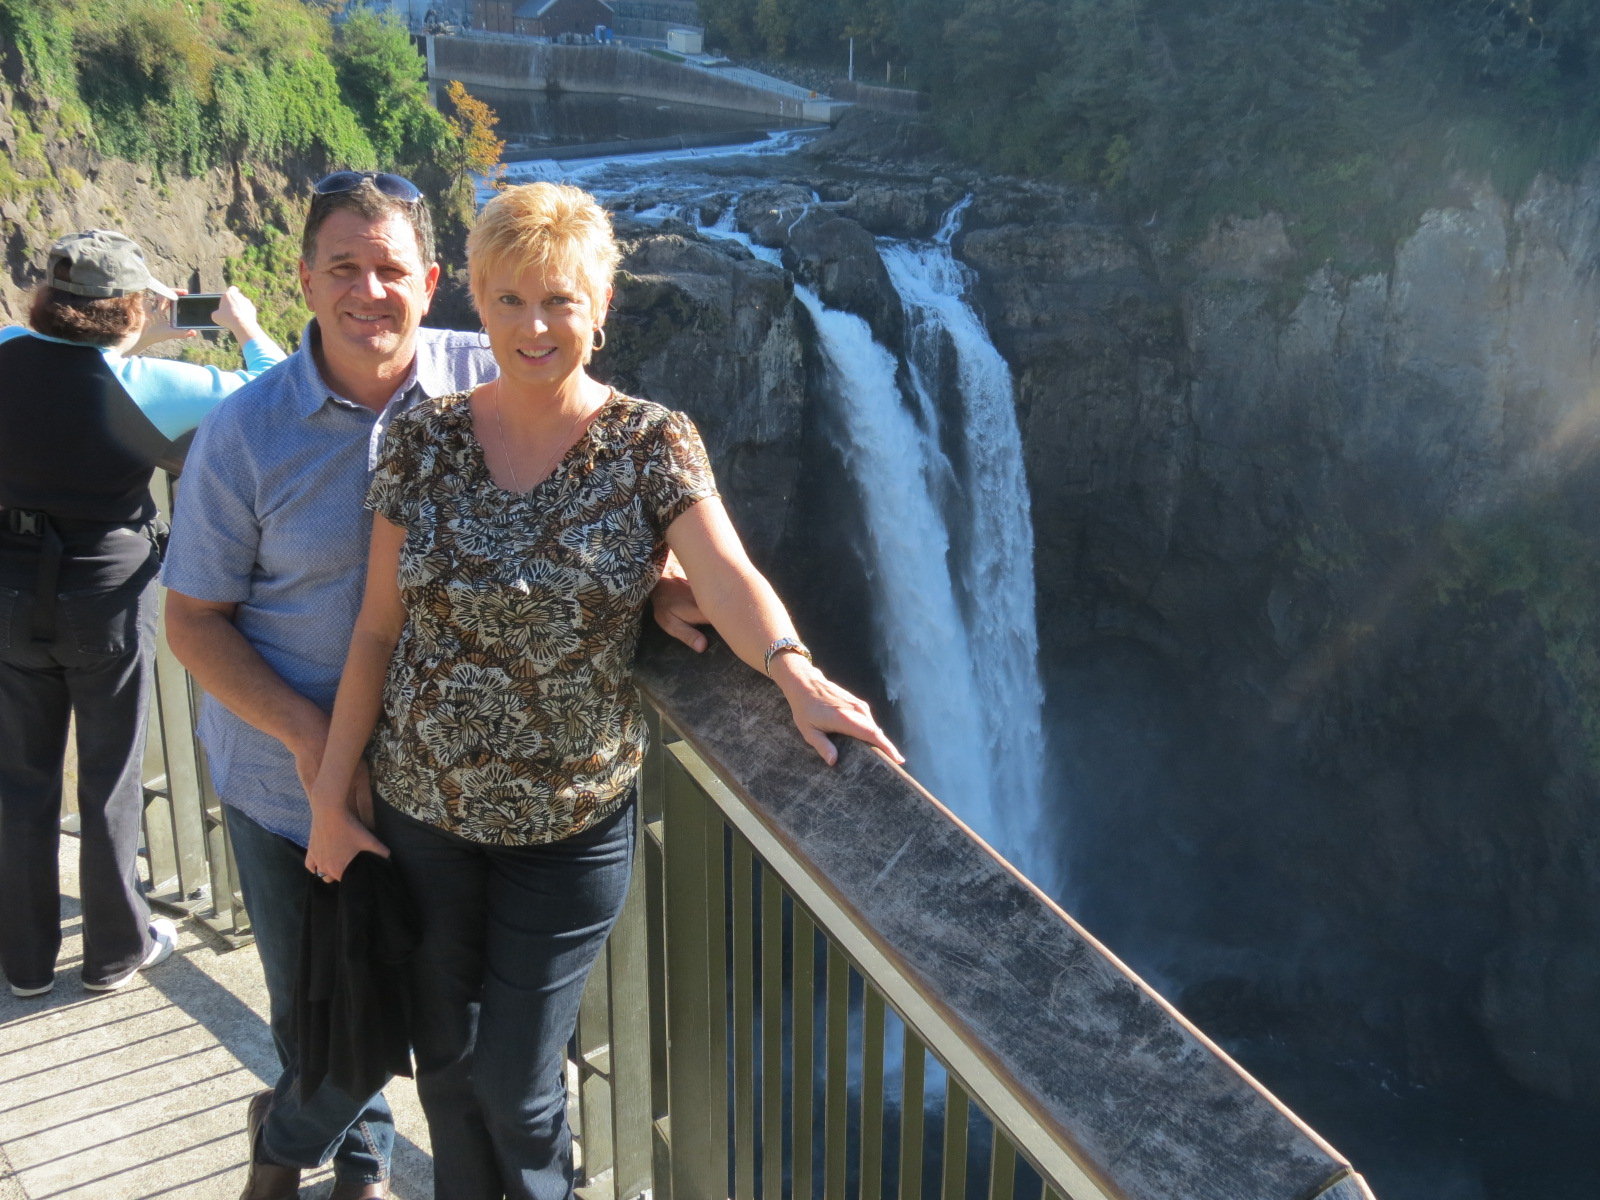 Lee & Carol from the viewing deck at Snoqualmie Falls